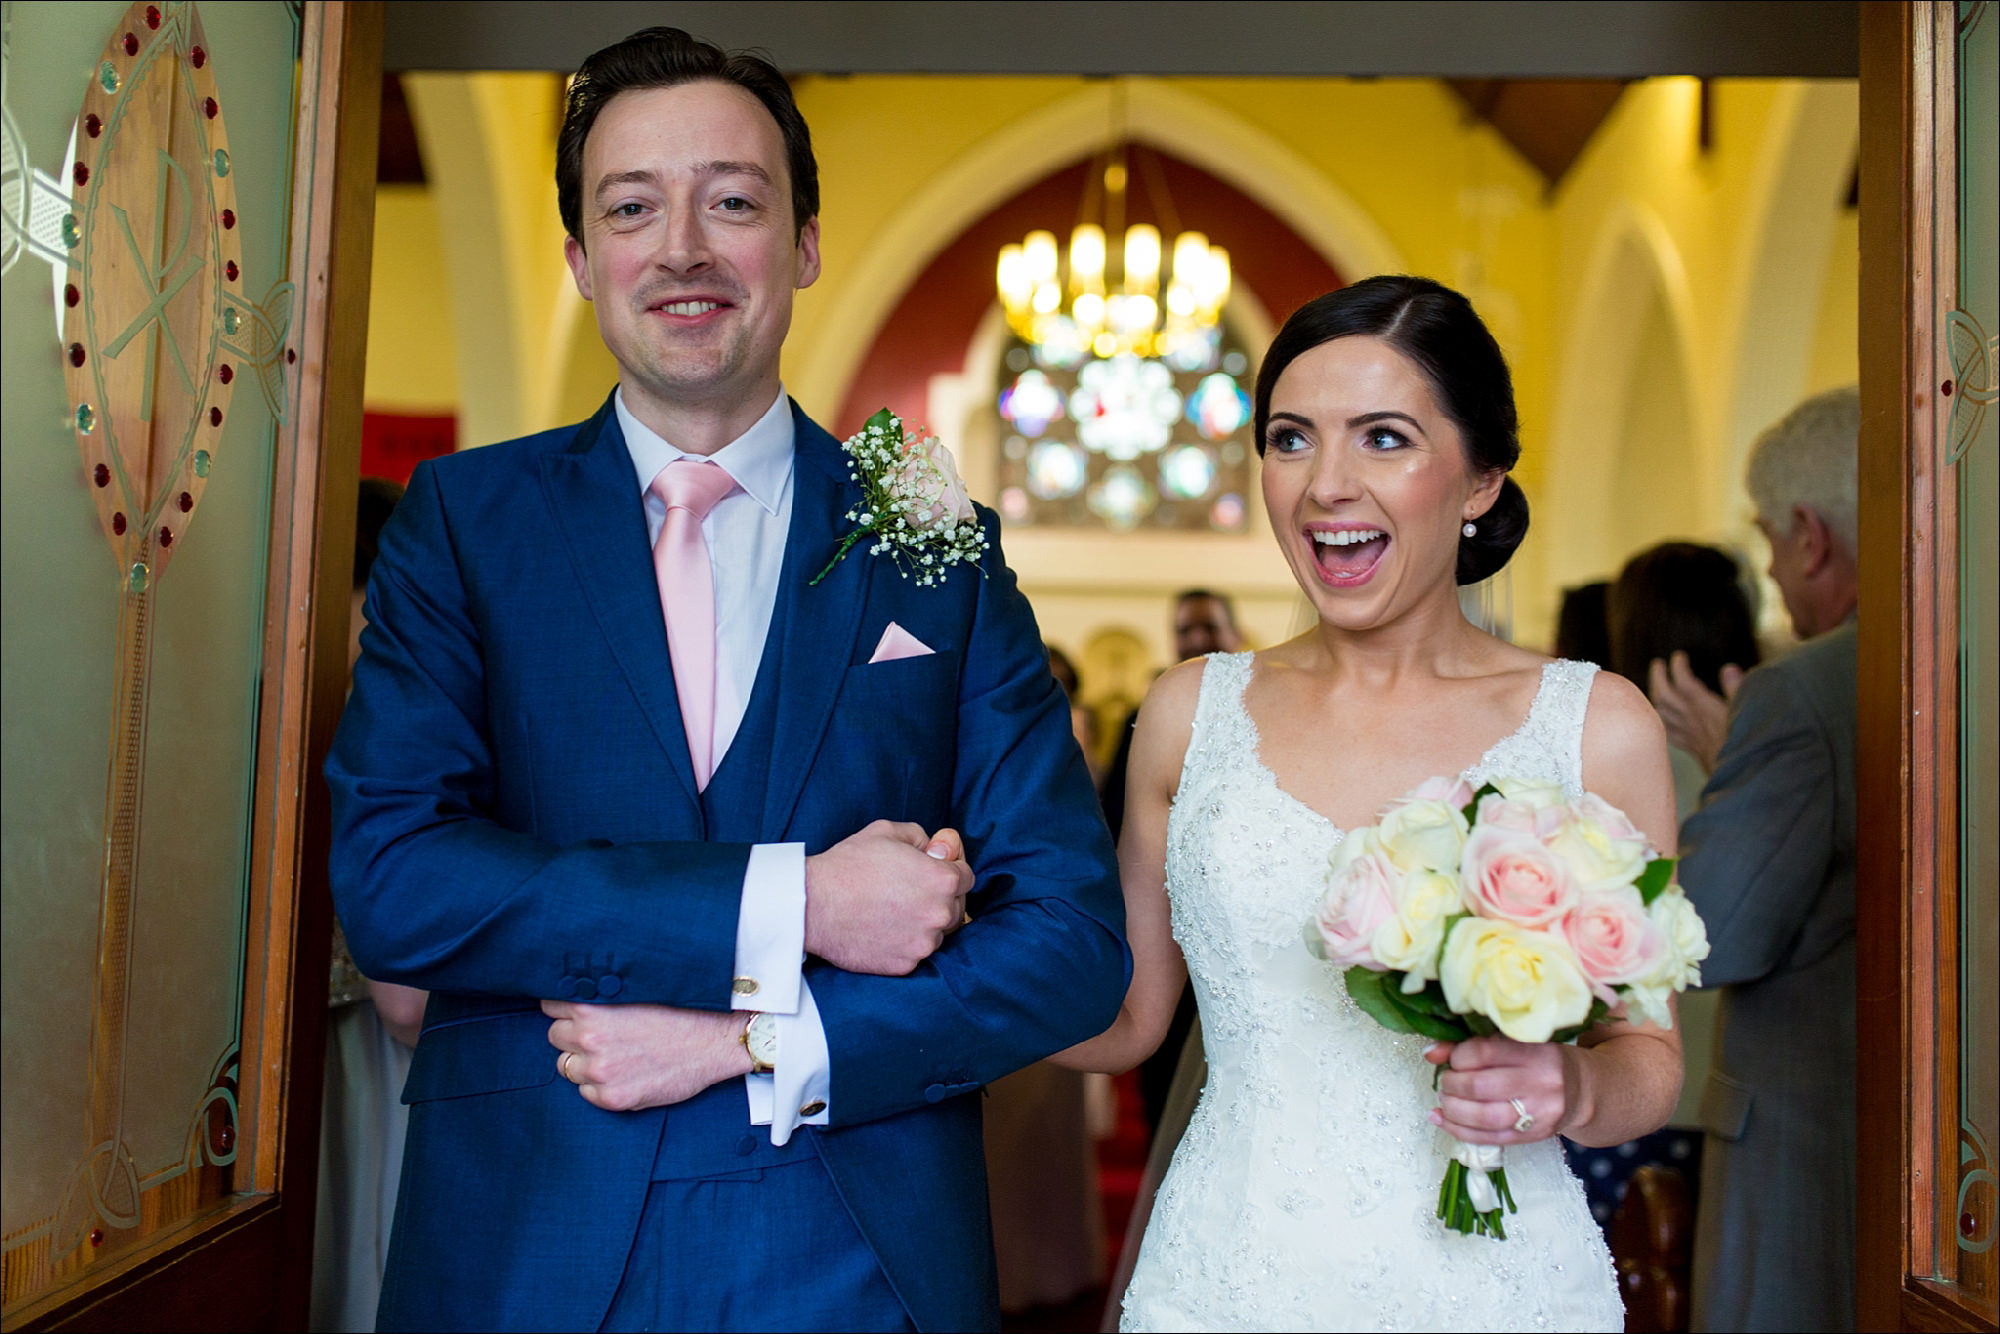 dublin wedding photographer david duignan photography bellingham castle weddings Ireland 0044